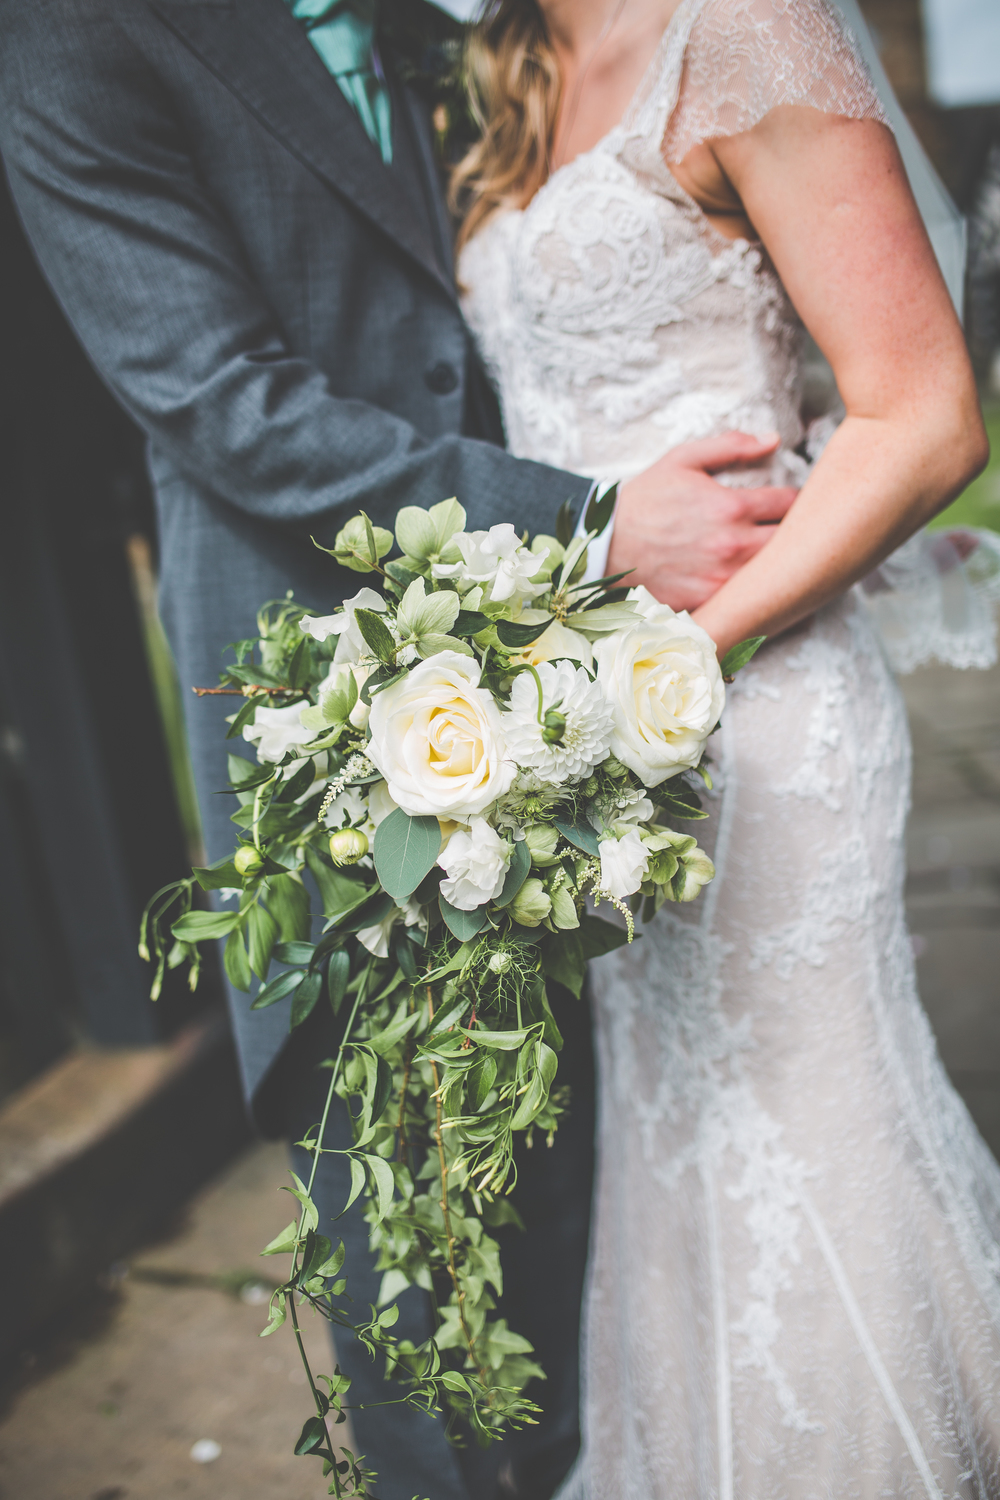 Close up of the bride's bouquet - wedding photography in Cheshire